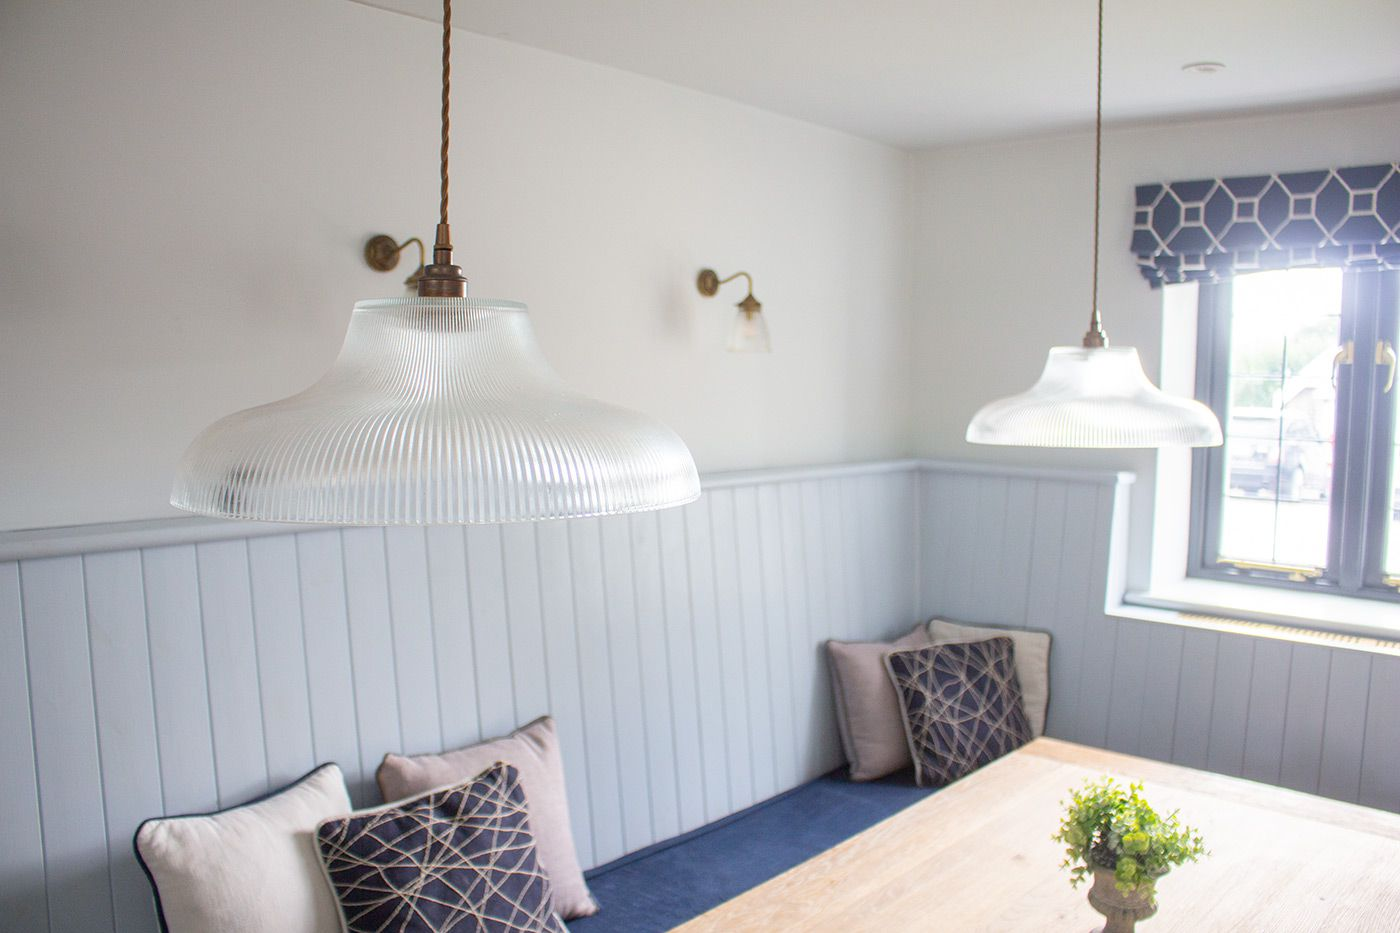 A photo of the two pendant lights over the dining table.